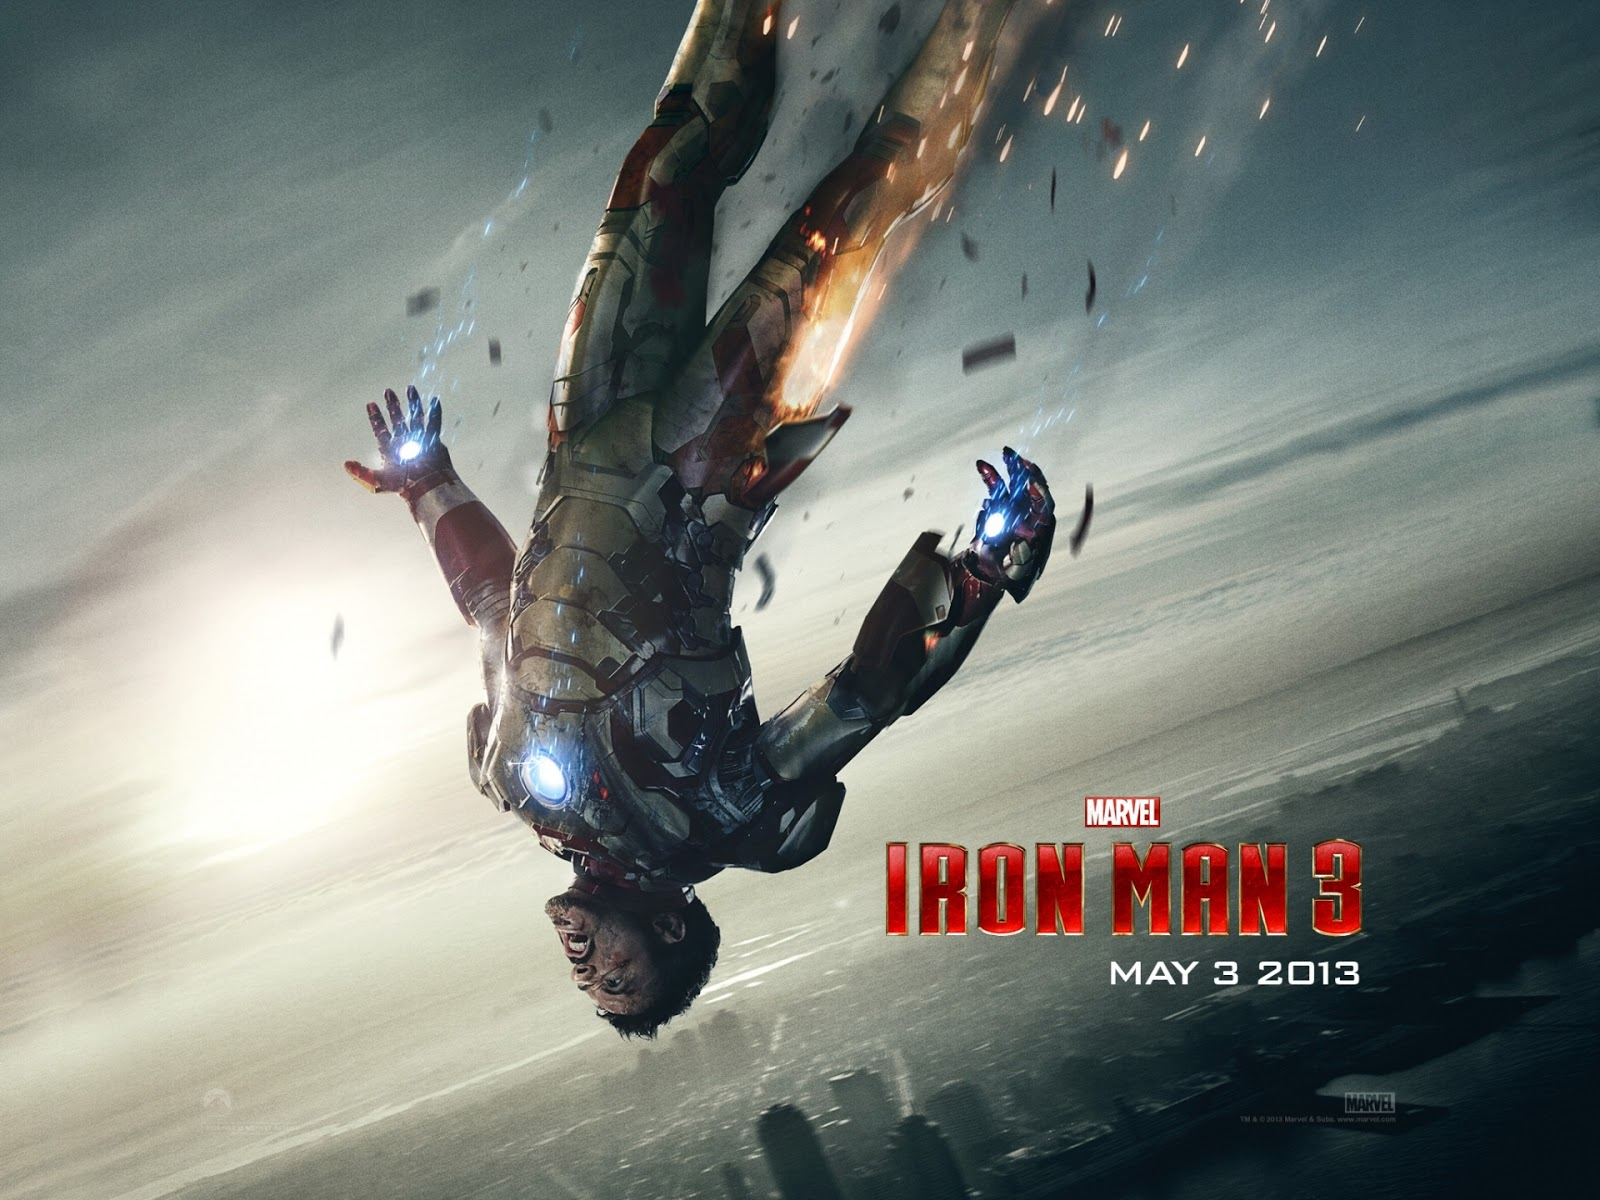 http://4.bp.blogspot.com/-EGHocWRQi7w/UV8Votde8fI/AAAAAAAAHTU/geta-c7Npds/s1600/Flying-Iron-Man-3-2013-HD-Wallpaper_Vvallpaper.Net.jpg